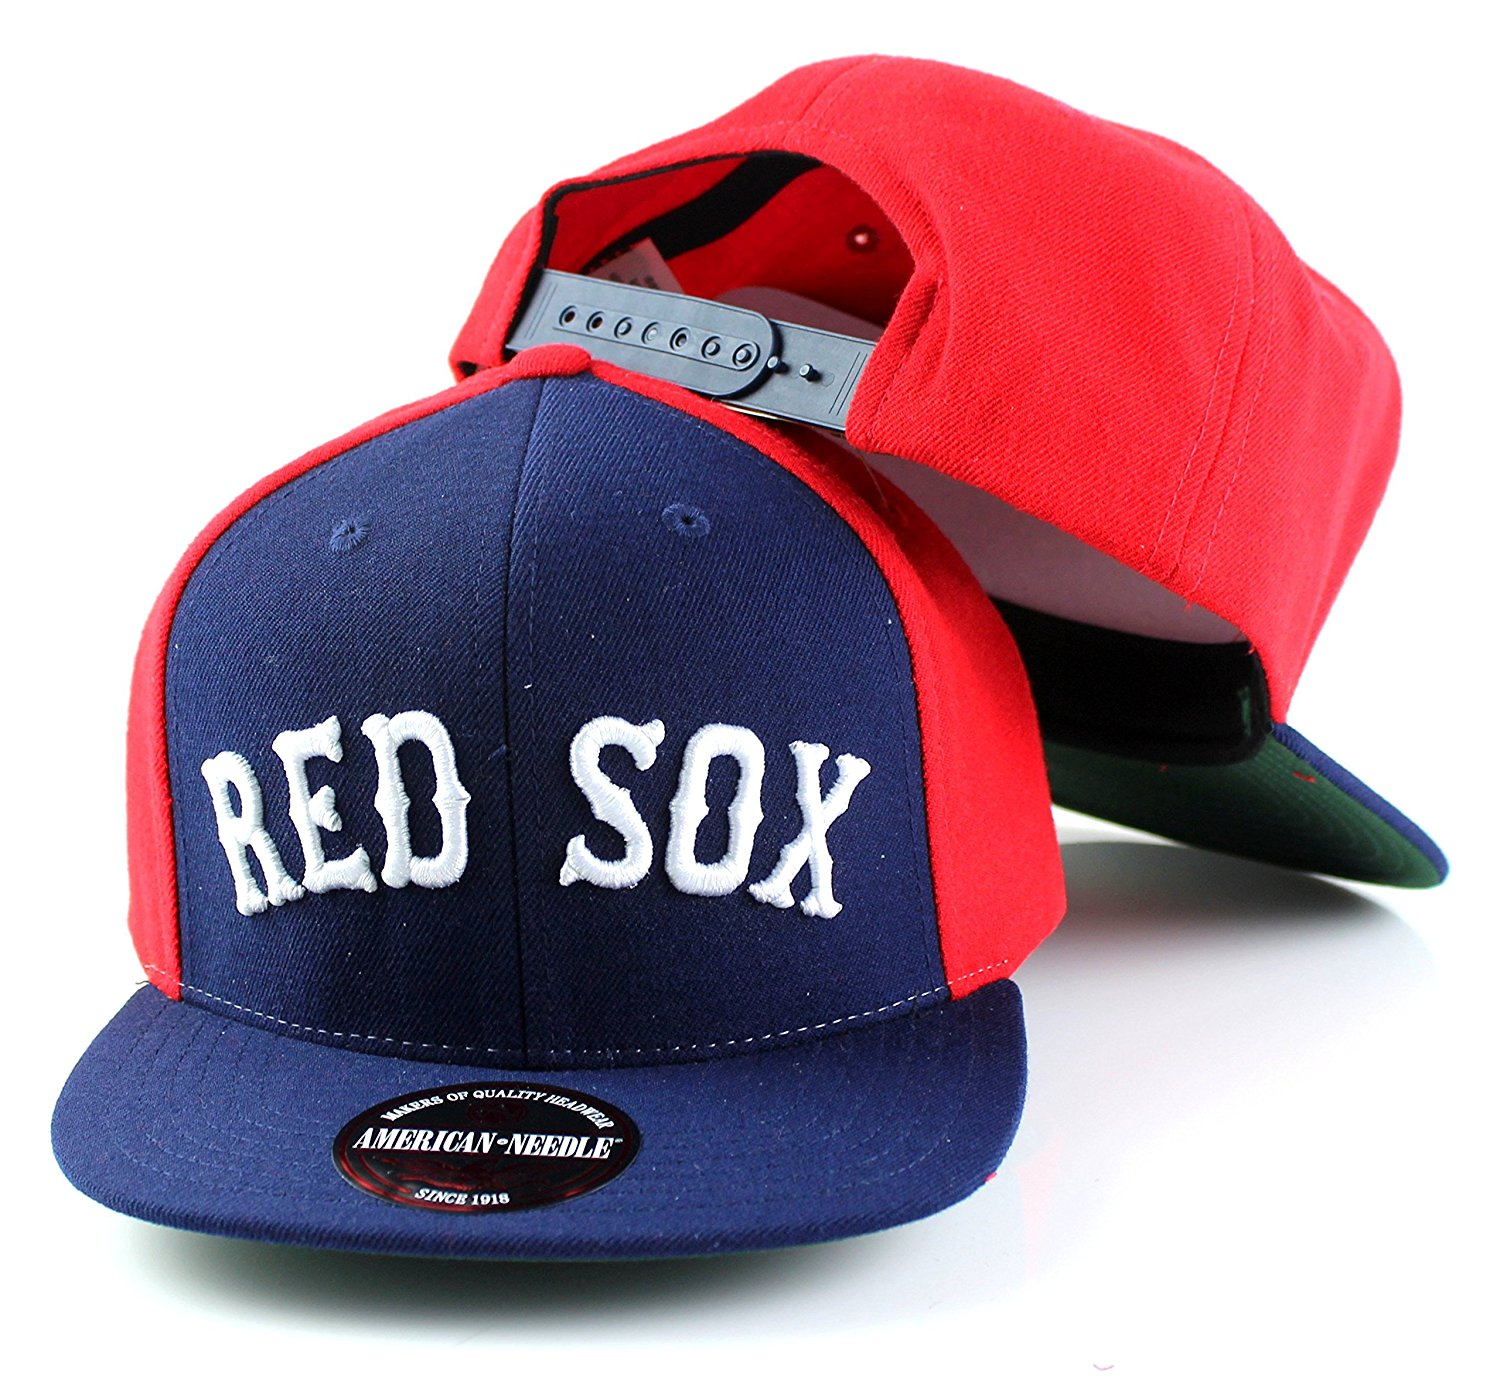 c5e522a1ba73eb Get Quotations · MLB American Needle Scripteez Cooperstown Wool Adjustable Snapback  Hat (Boston Red Sox)